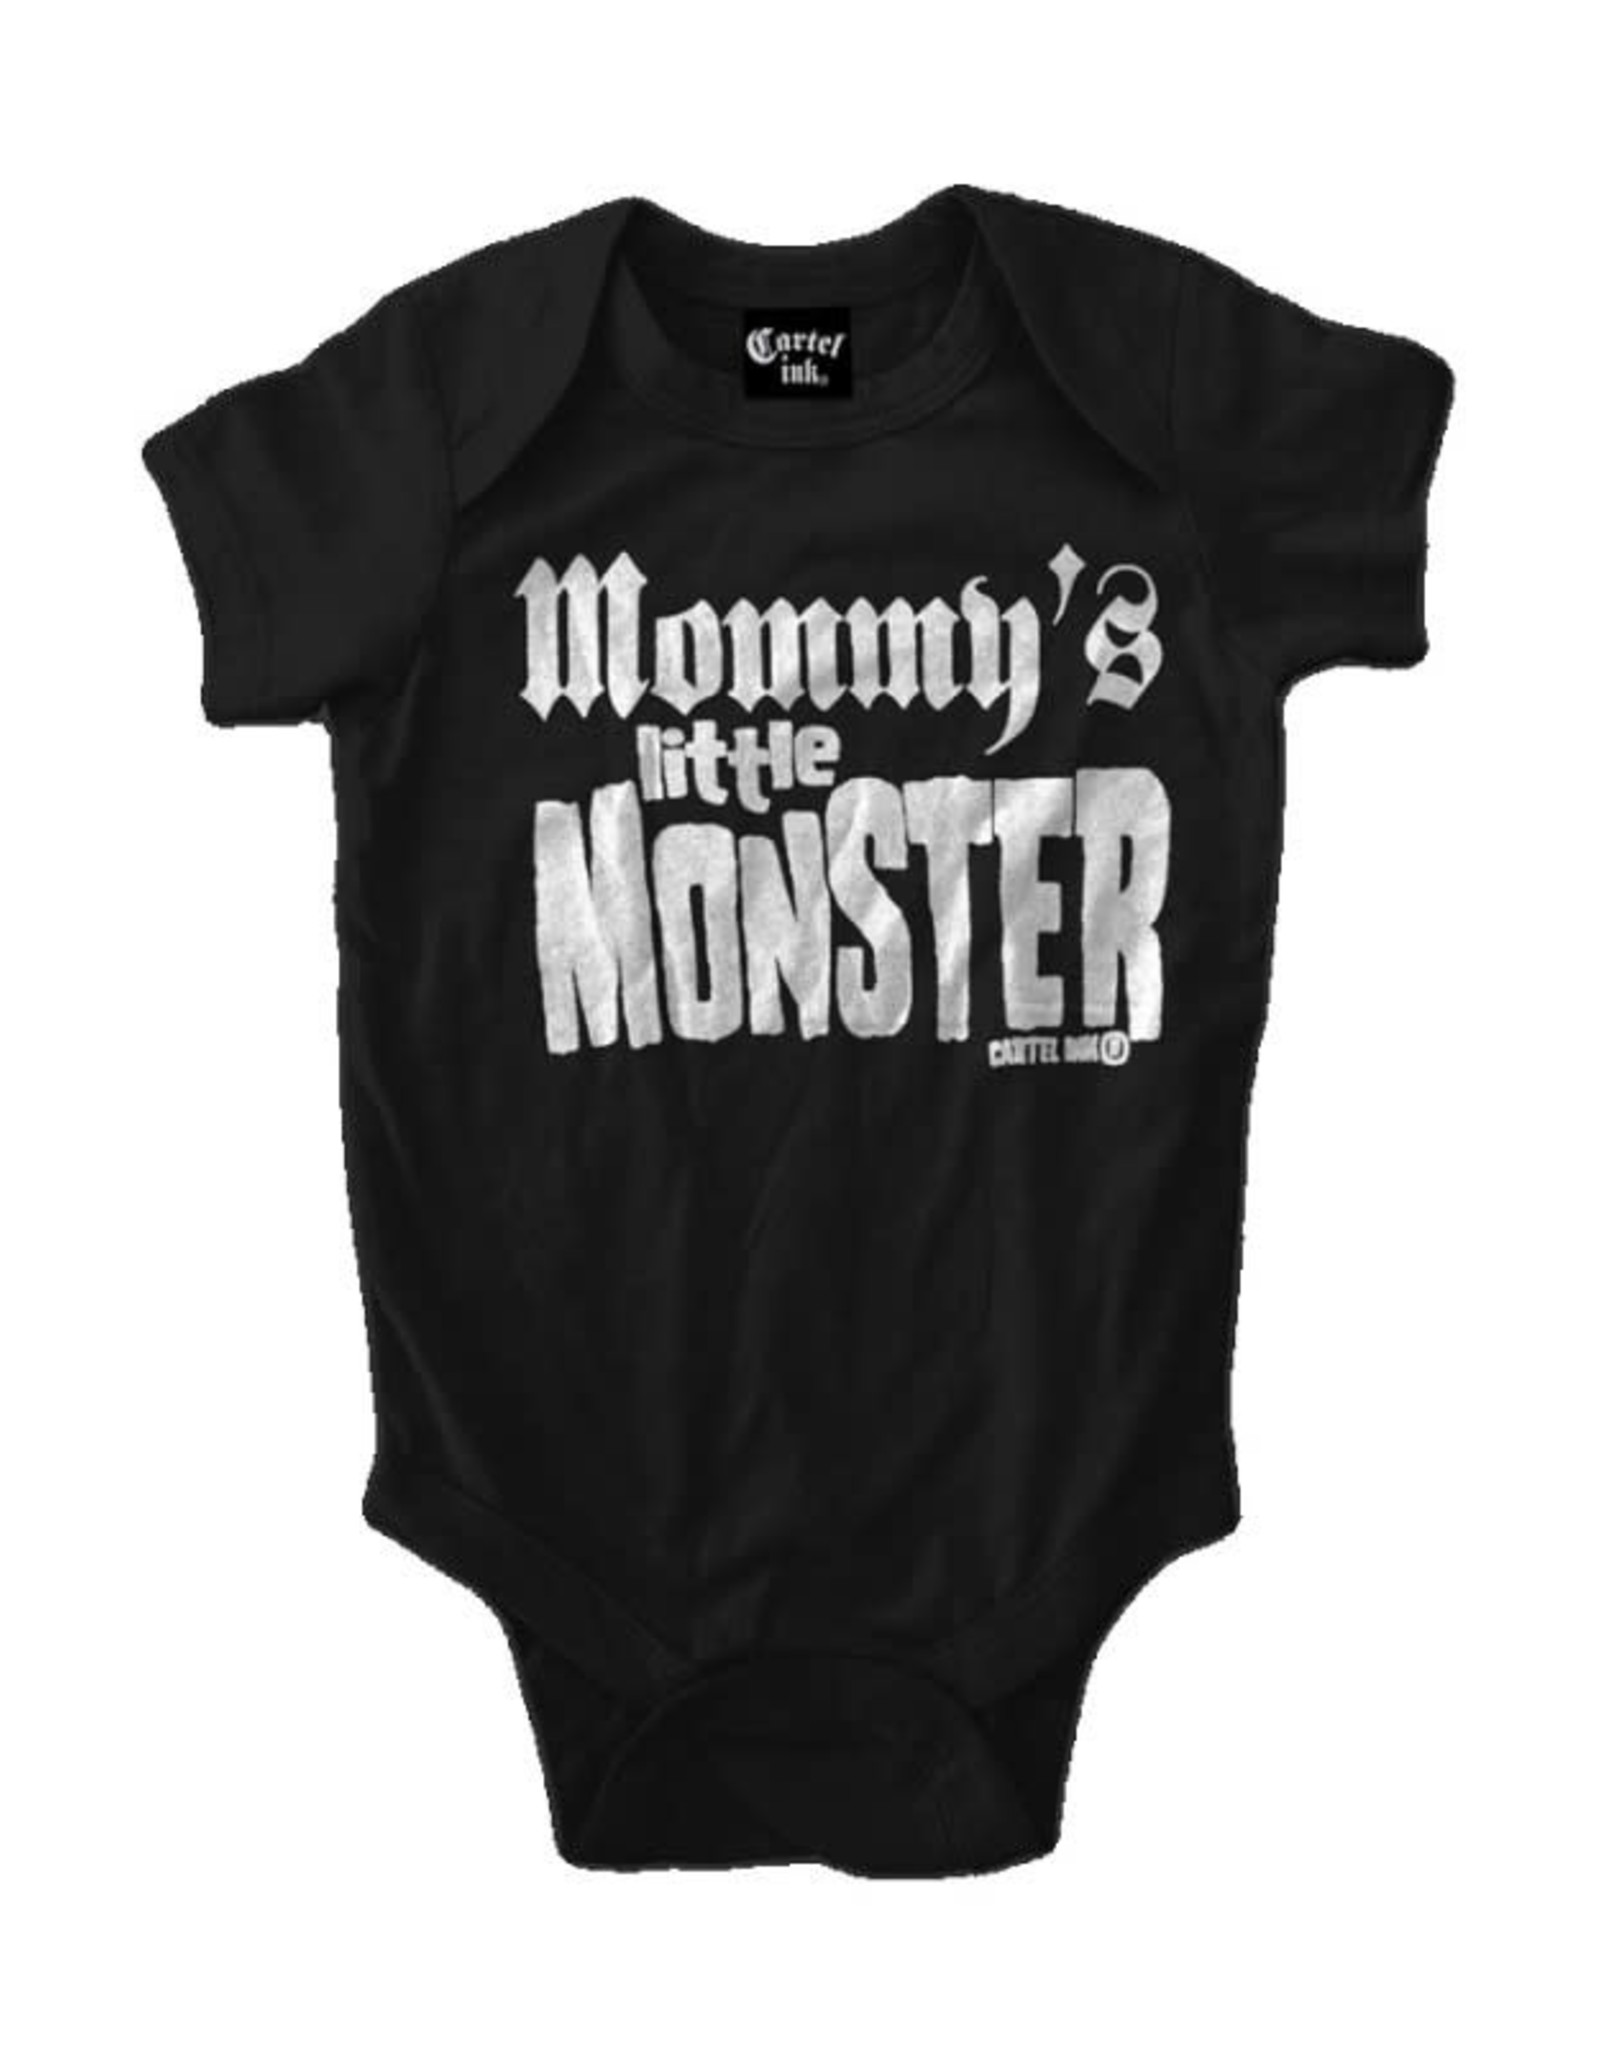 CARTEL INK - Mommy's Little Monster One-Piece